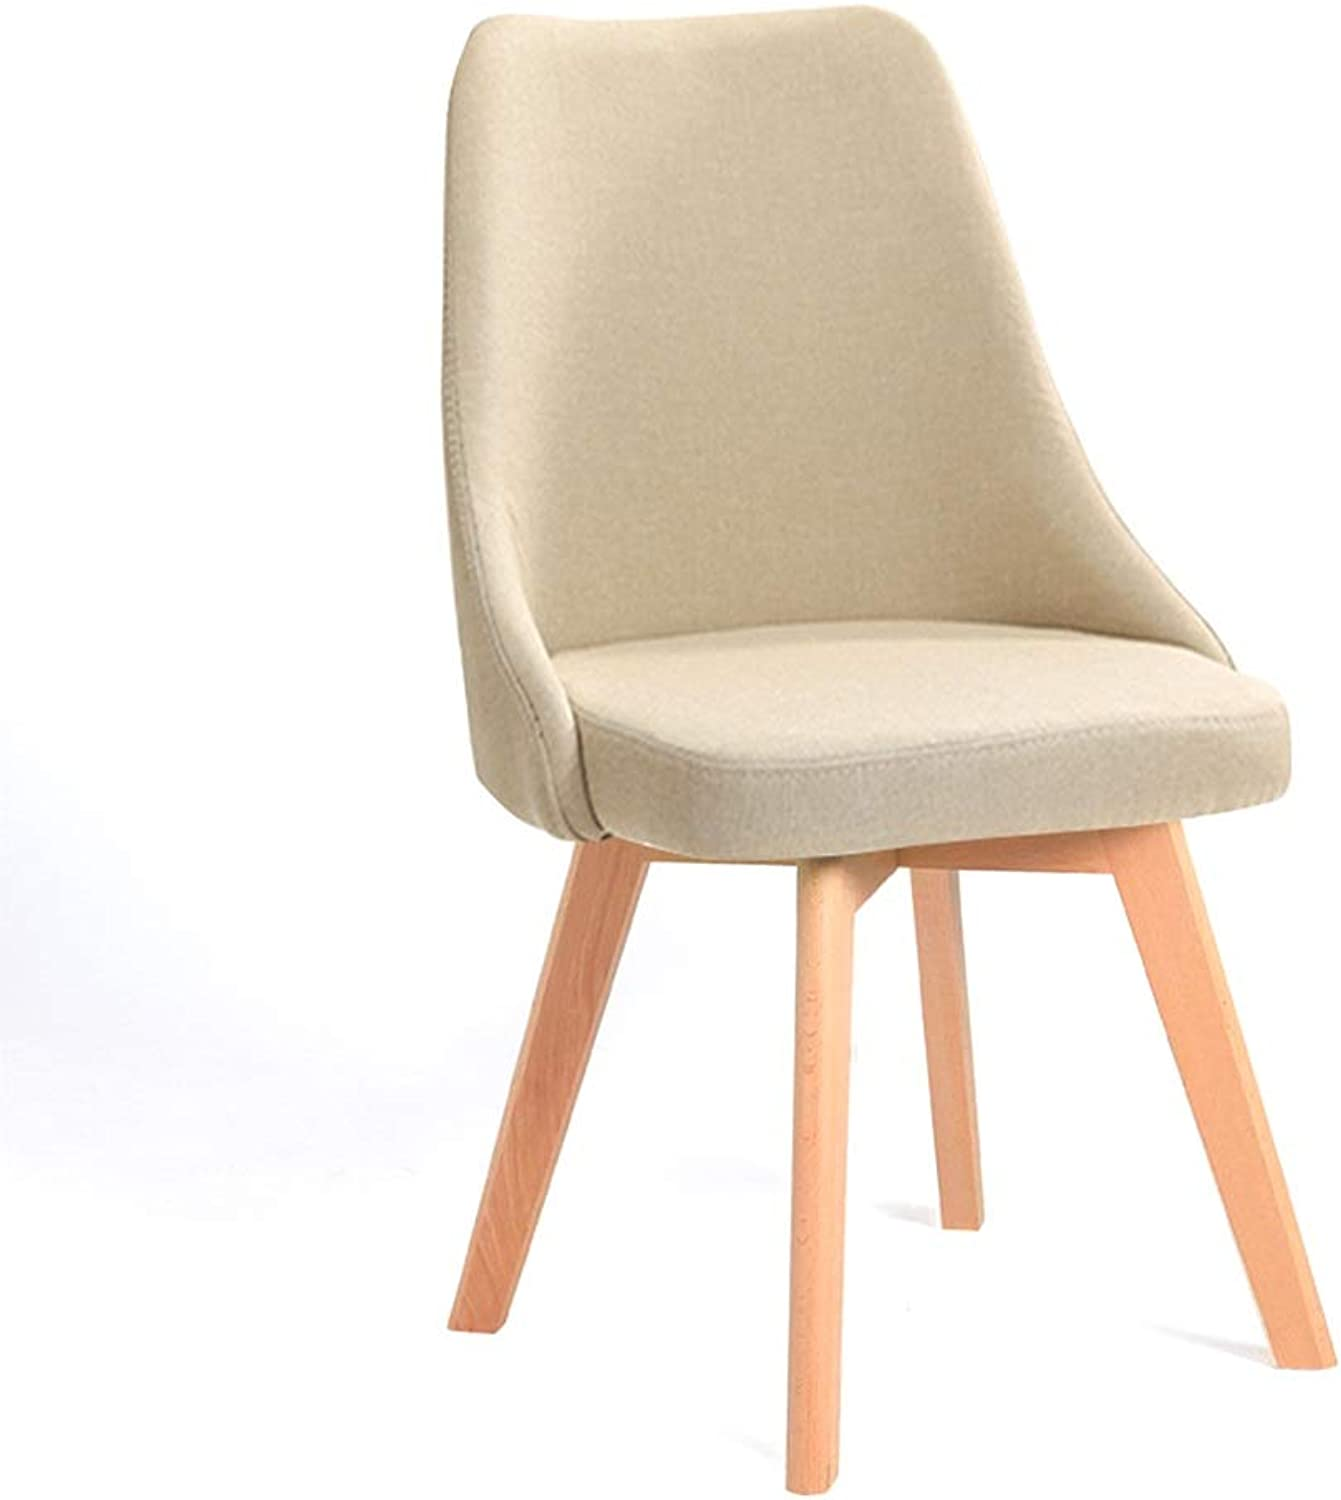 Imported Beech Wood Chair Metal Chair Frame Dining Chair Home Stool Load-Bearing 300 kg Modern Minimalist Fabric Desk Chair Restaurant (color   Plain)